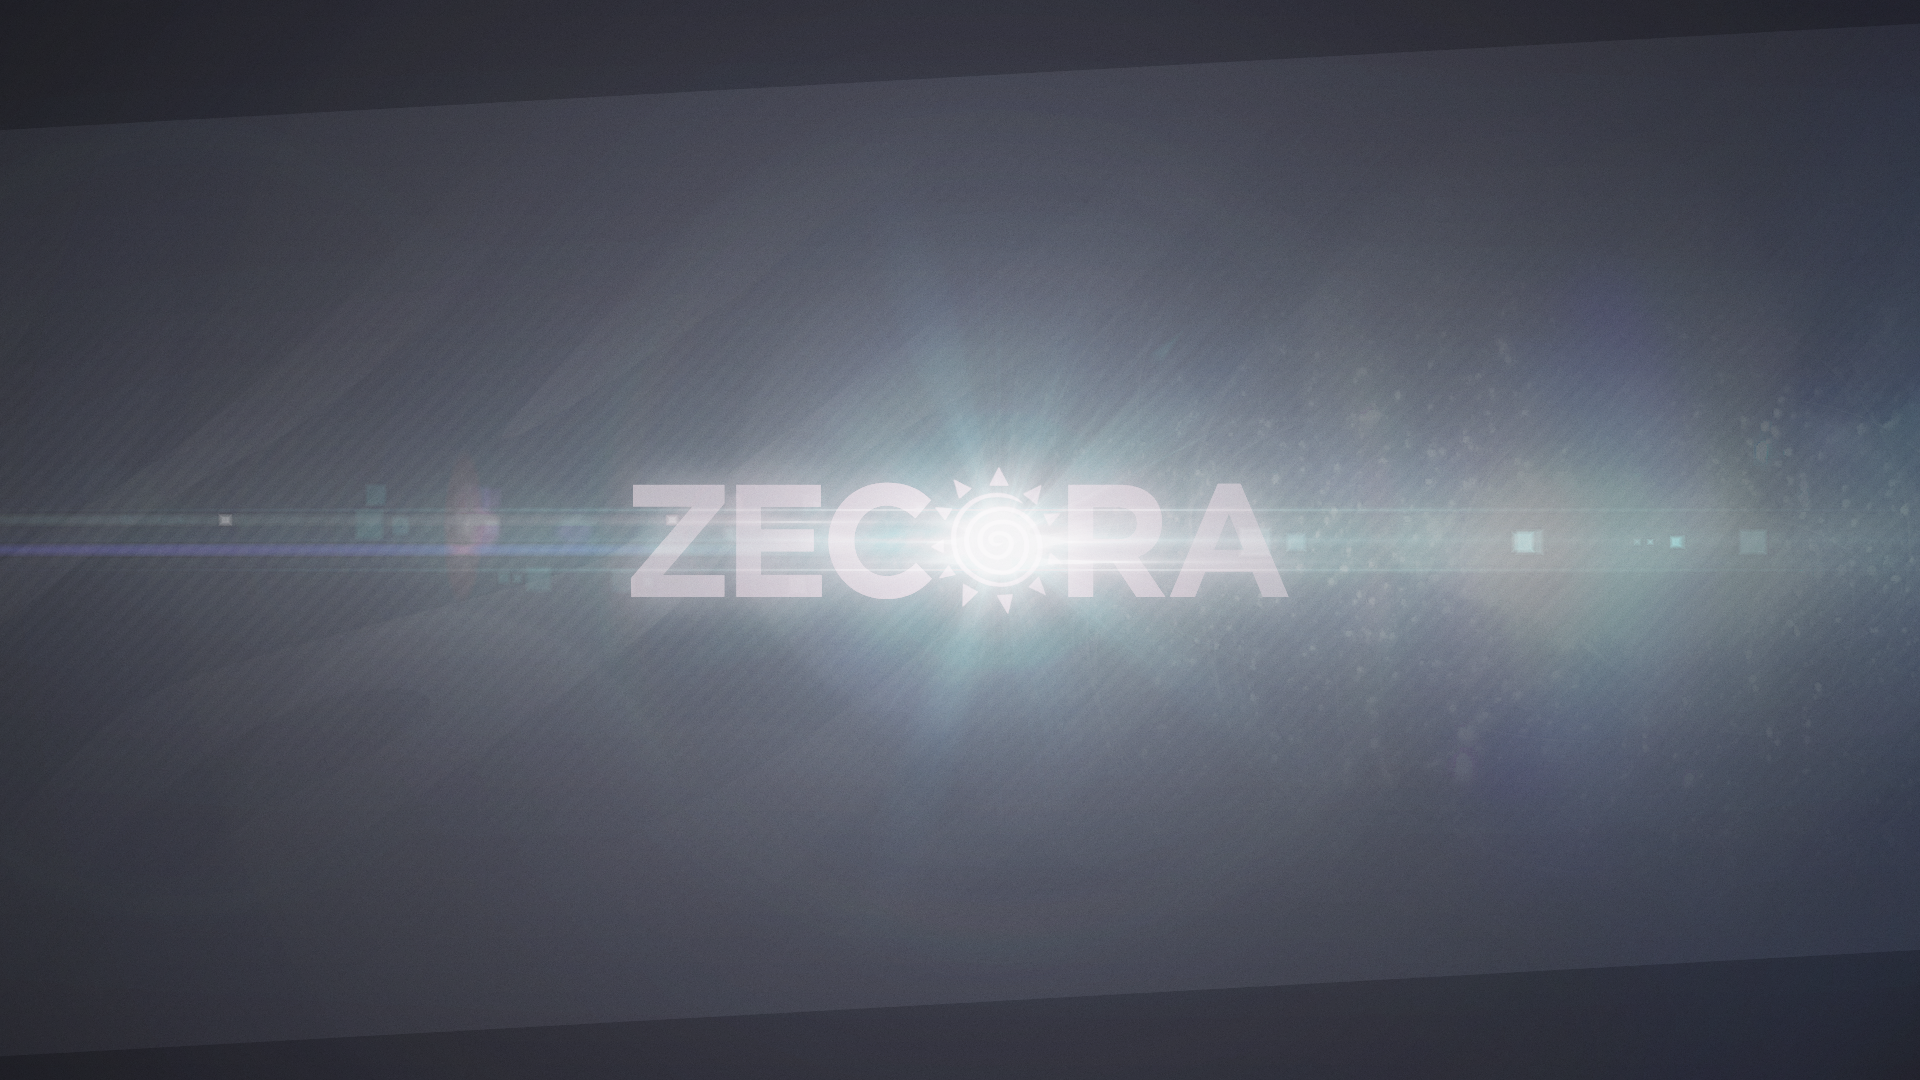 Zecora by Hawk9mm and impala99